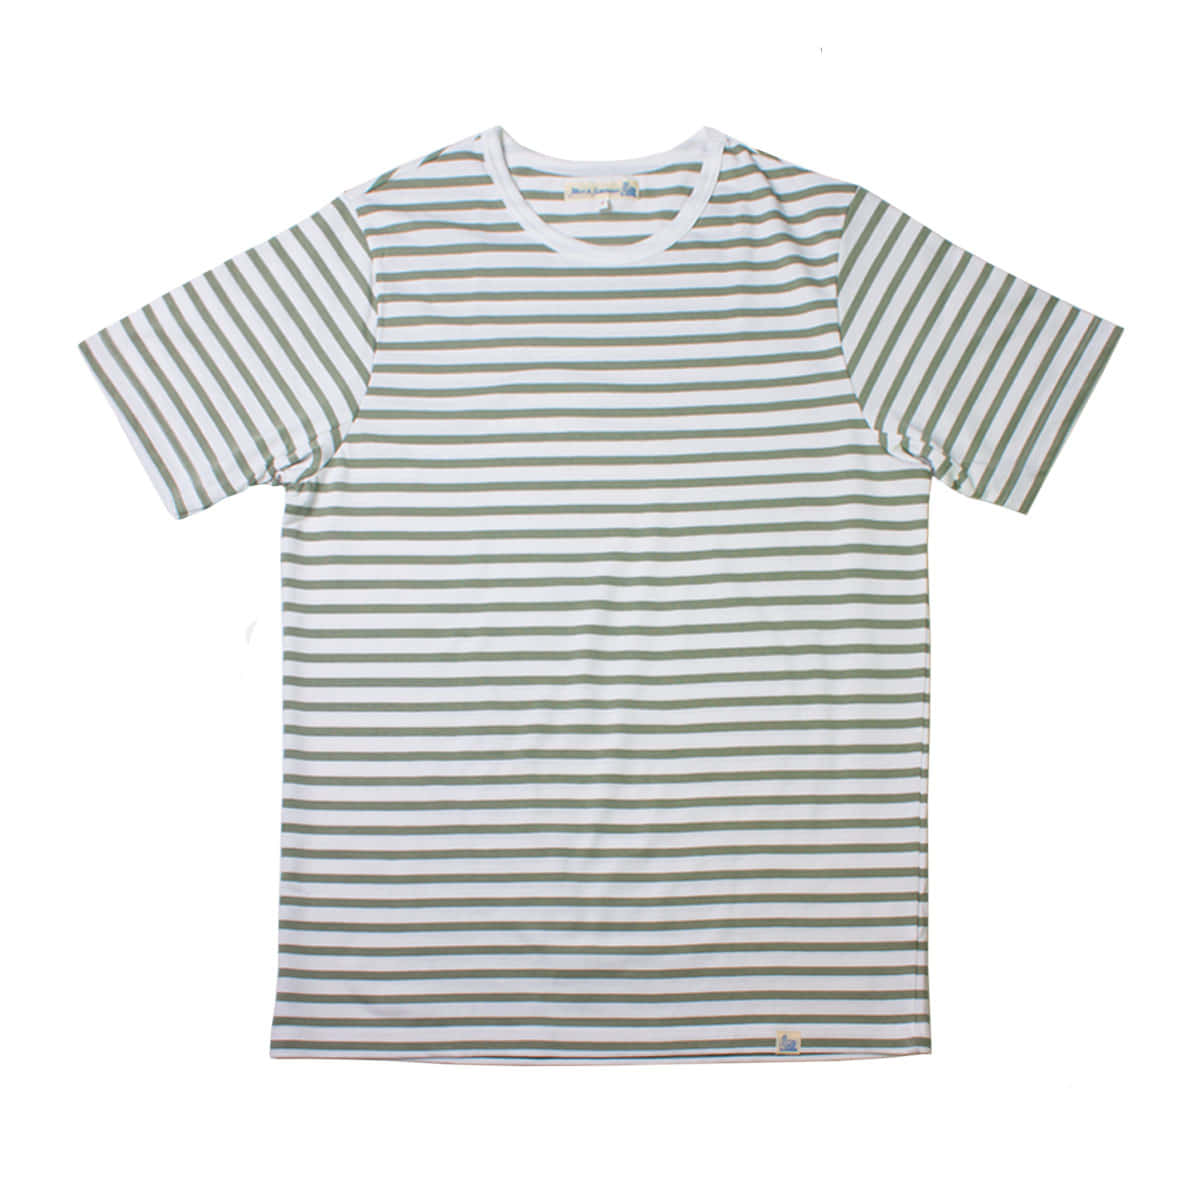 [Merz B. Schwanen] MEN'S 2M15 CLASSIC CREW NECK T-SHIRT 'WHITE-LIGHT ARMY'